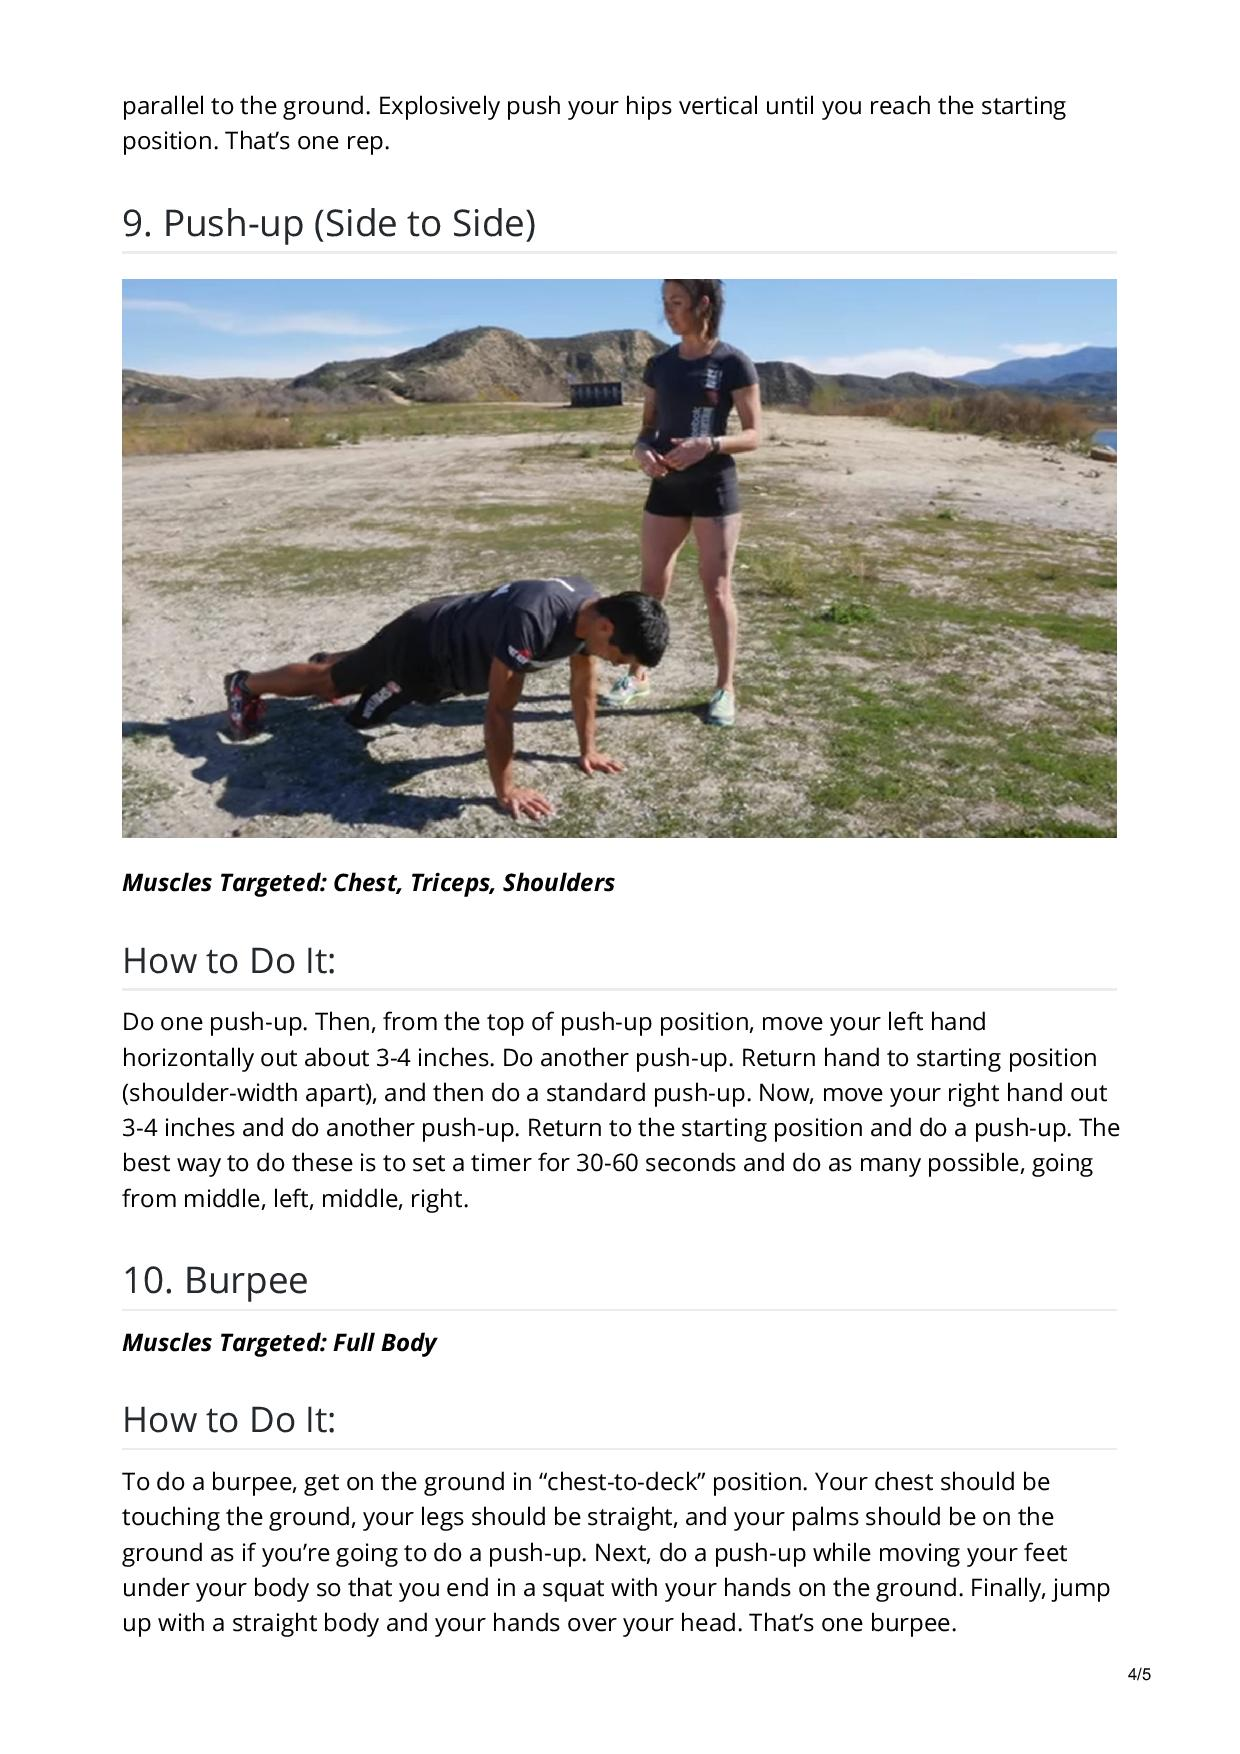 spartan-com-10-Best-Exercises-to-Train-f